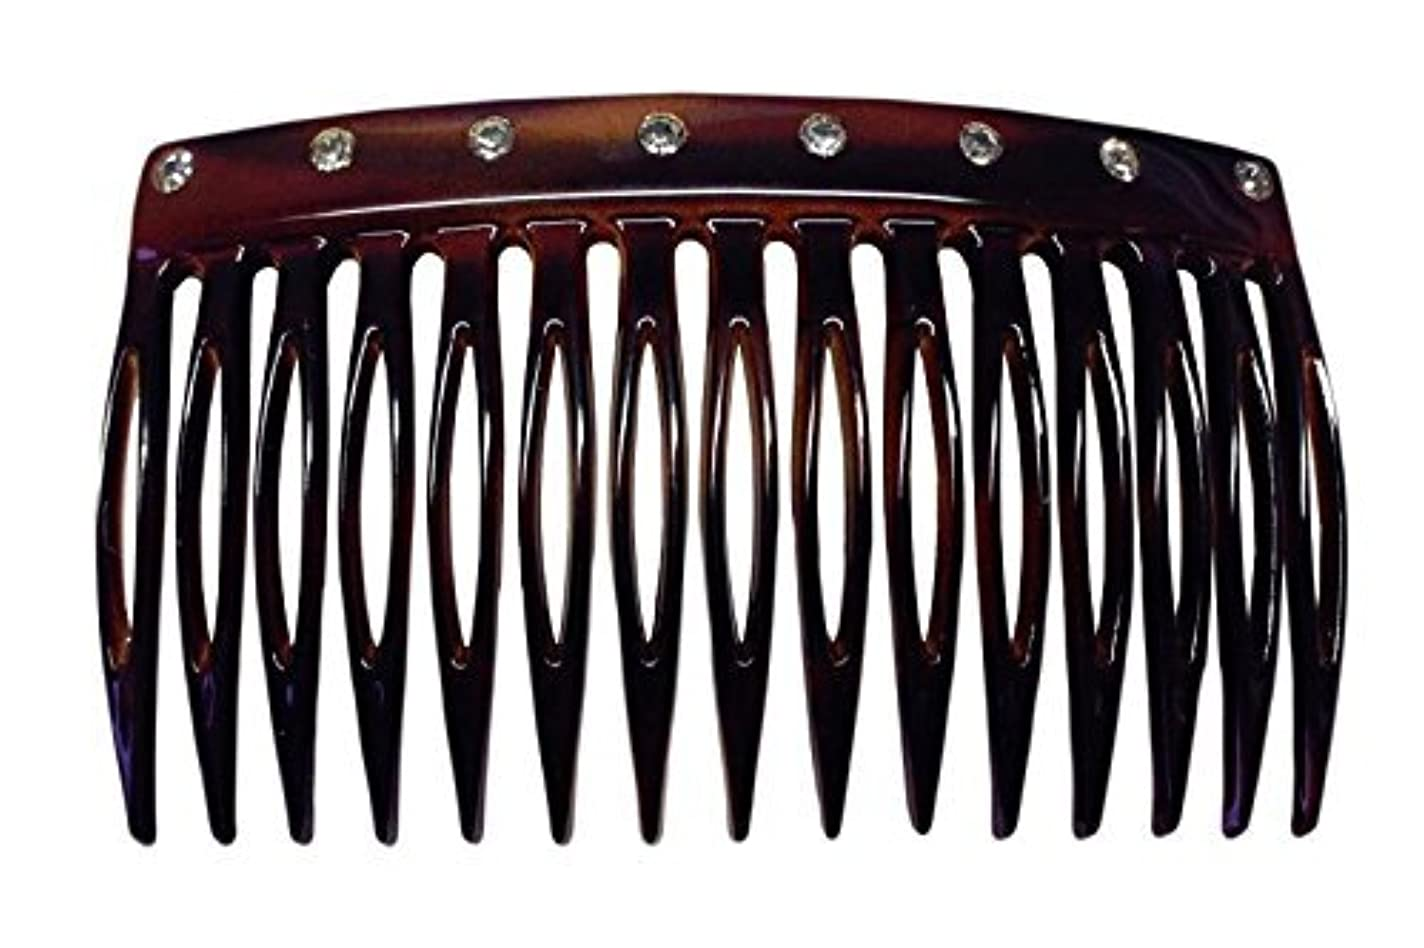 Parcelona French Crystals Celluloid Shell Hair Updo Side Comb -2 3/4 Inch [並行輸入品]